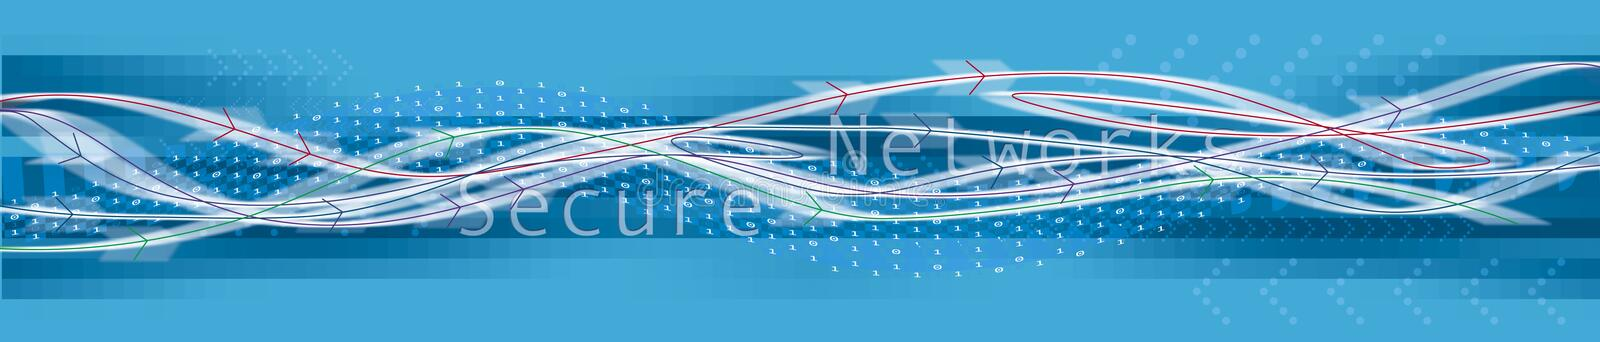 Secure networking stock images